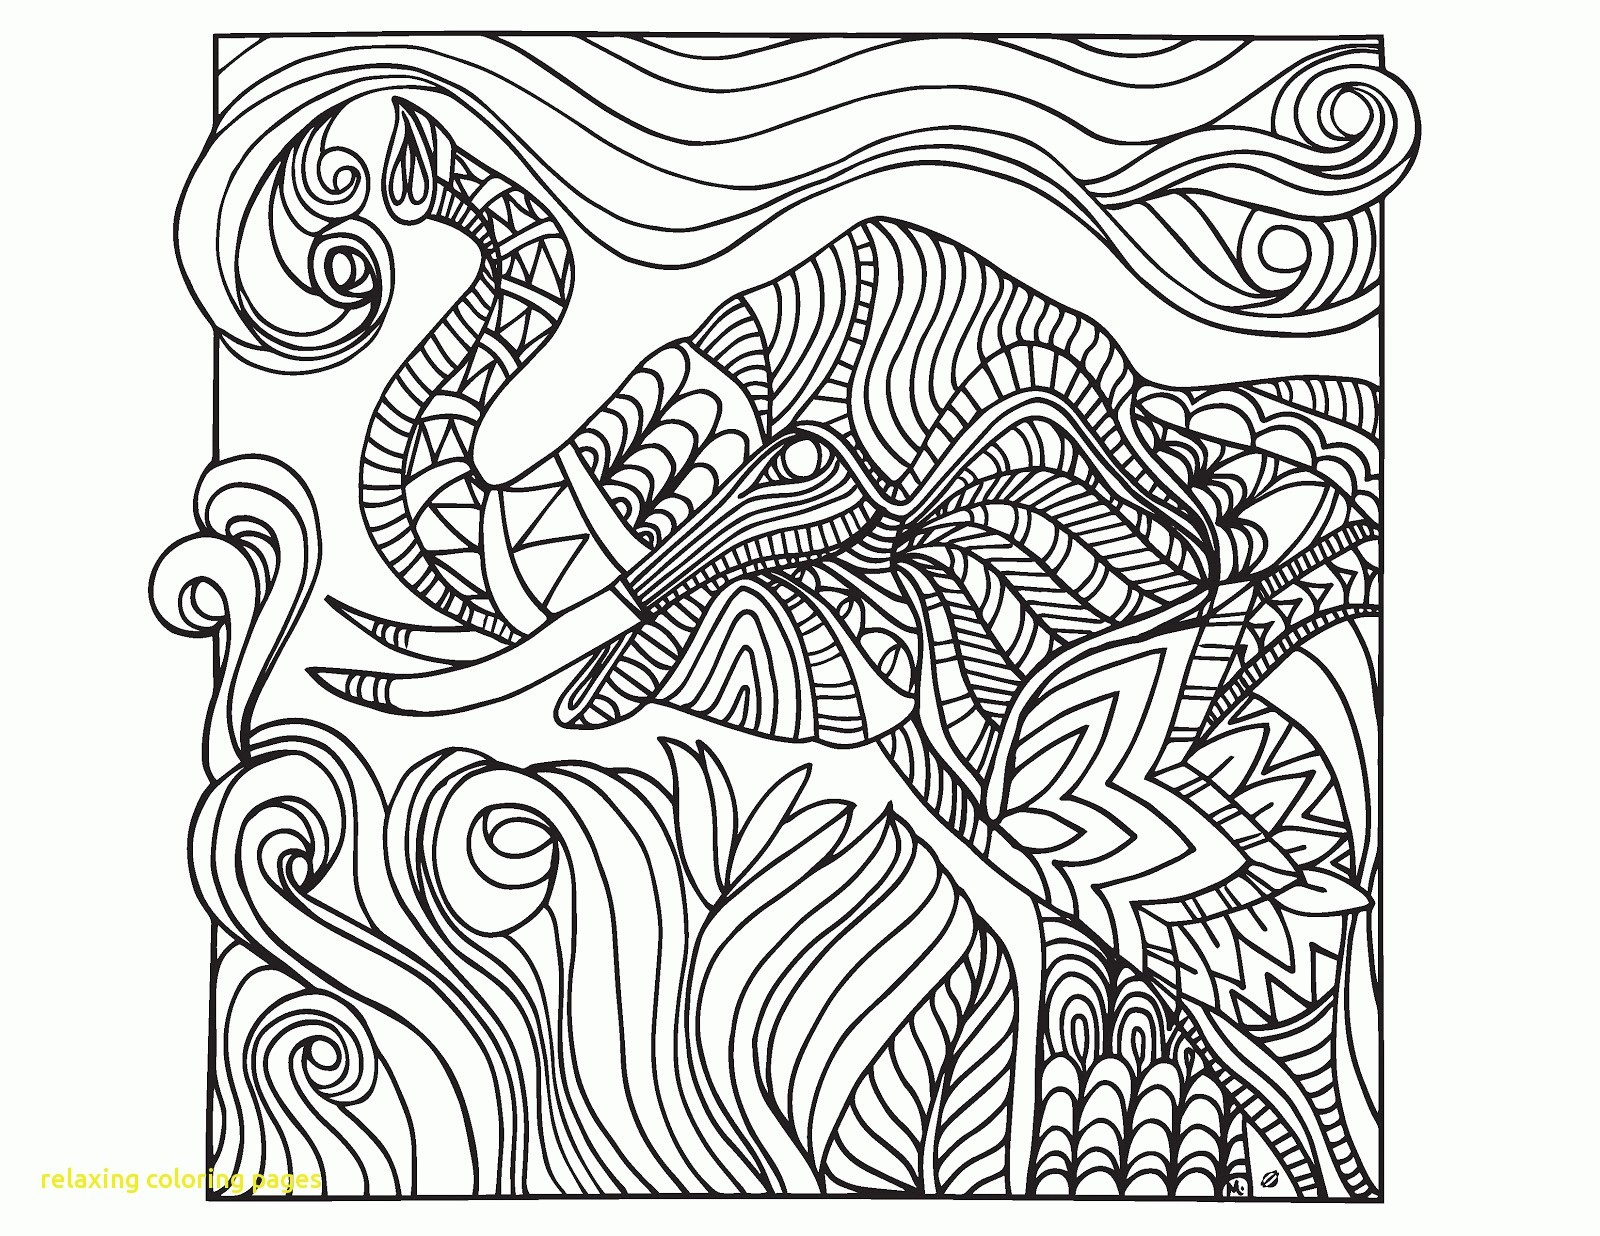 Relaxing Coloring Pages Relaxation Coloring Pages New Relaxing With Bitslice